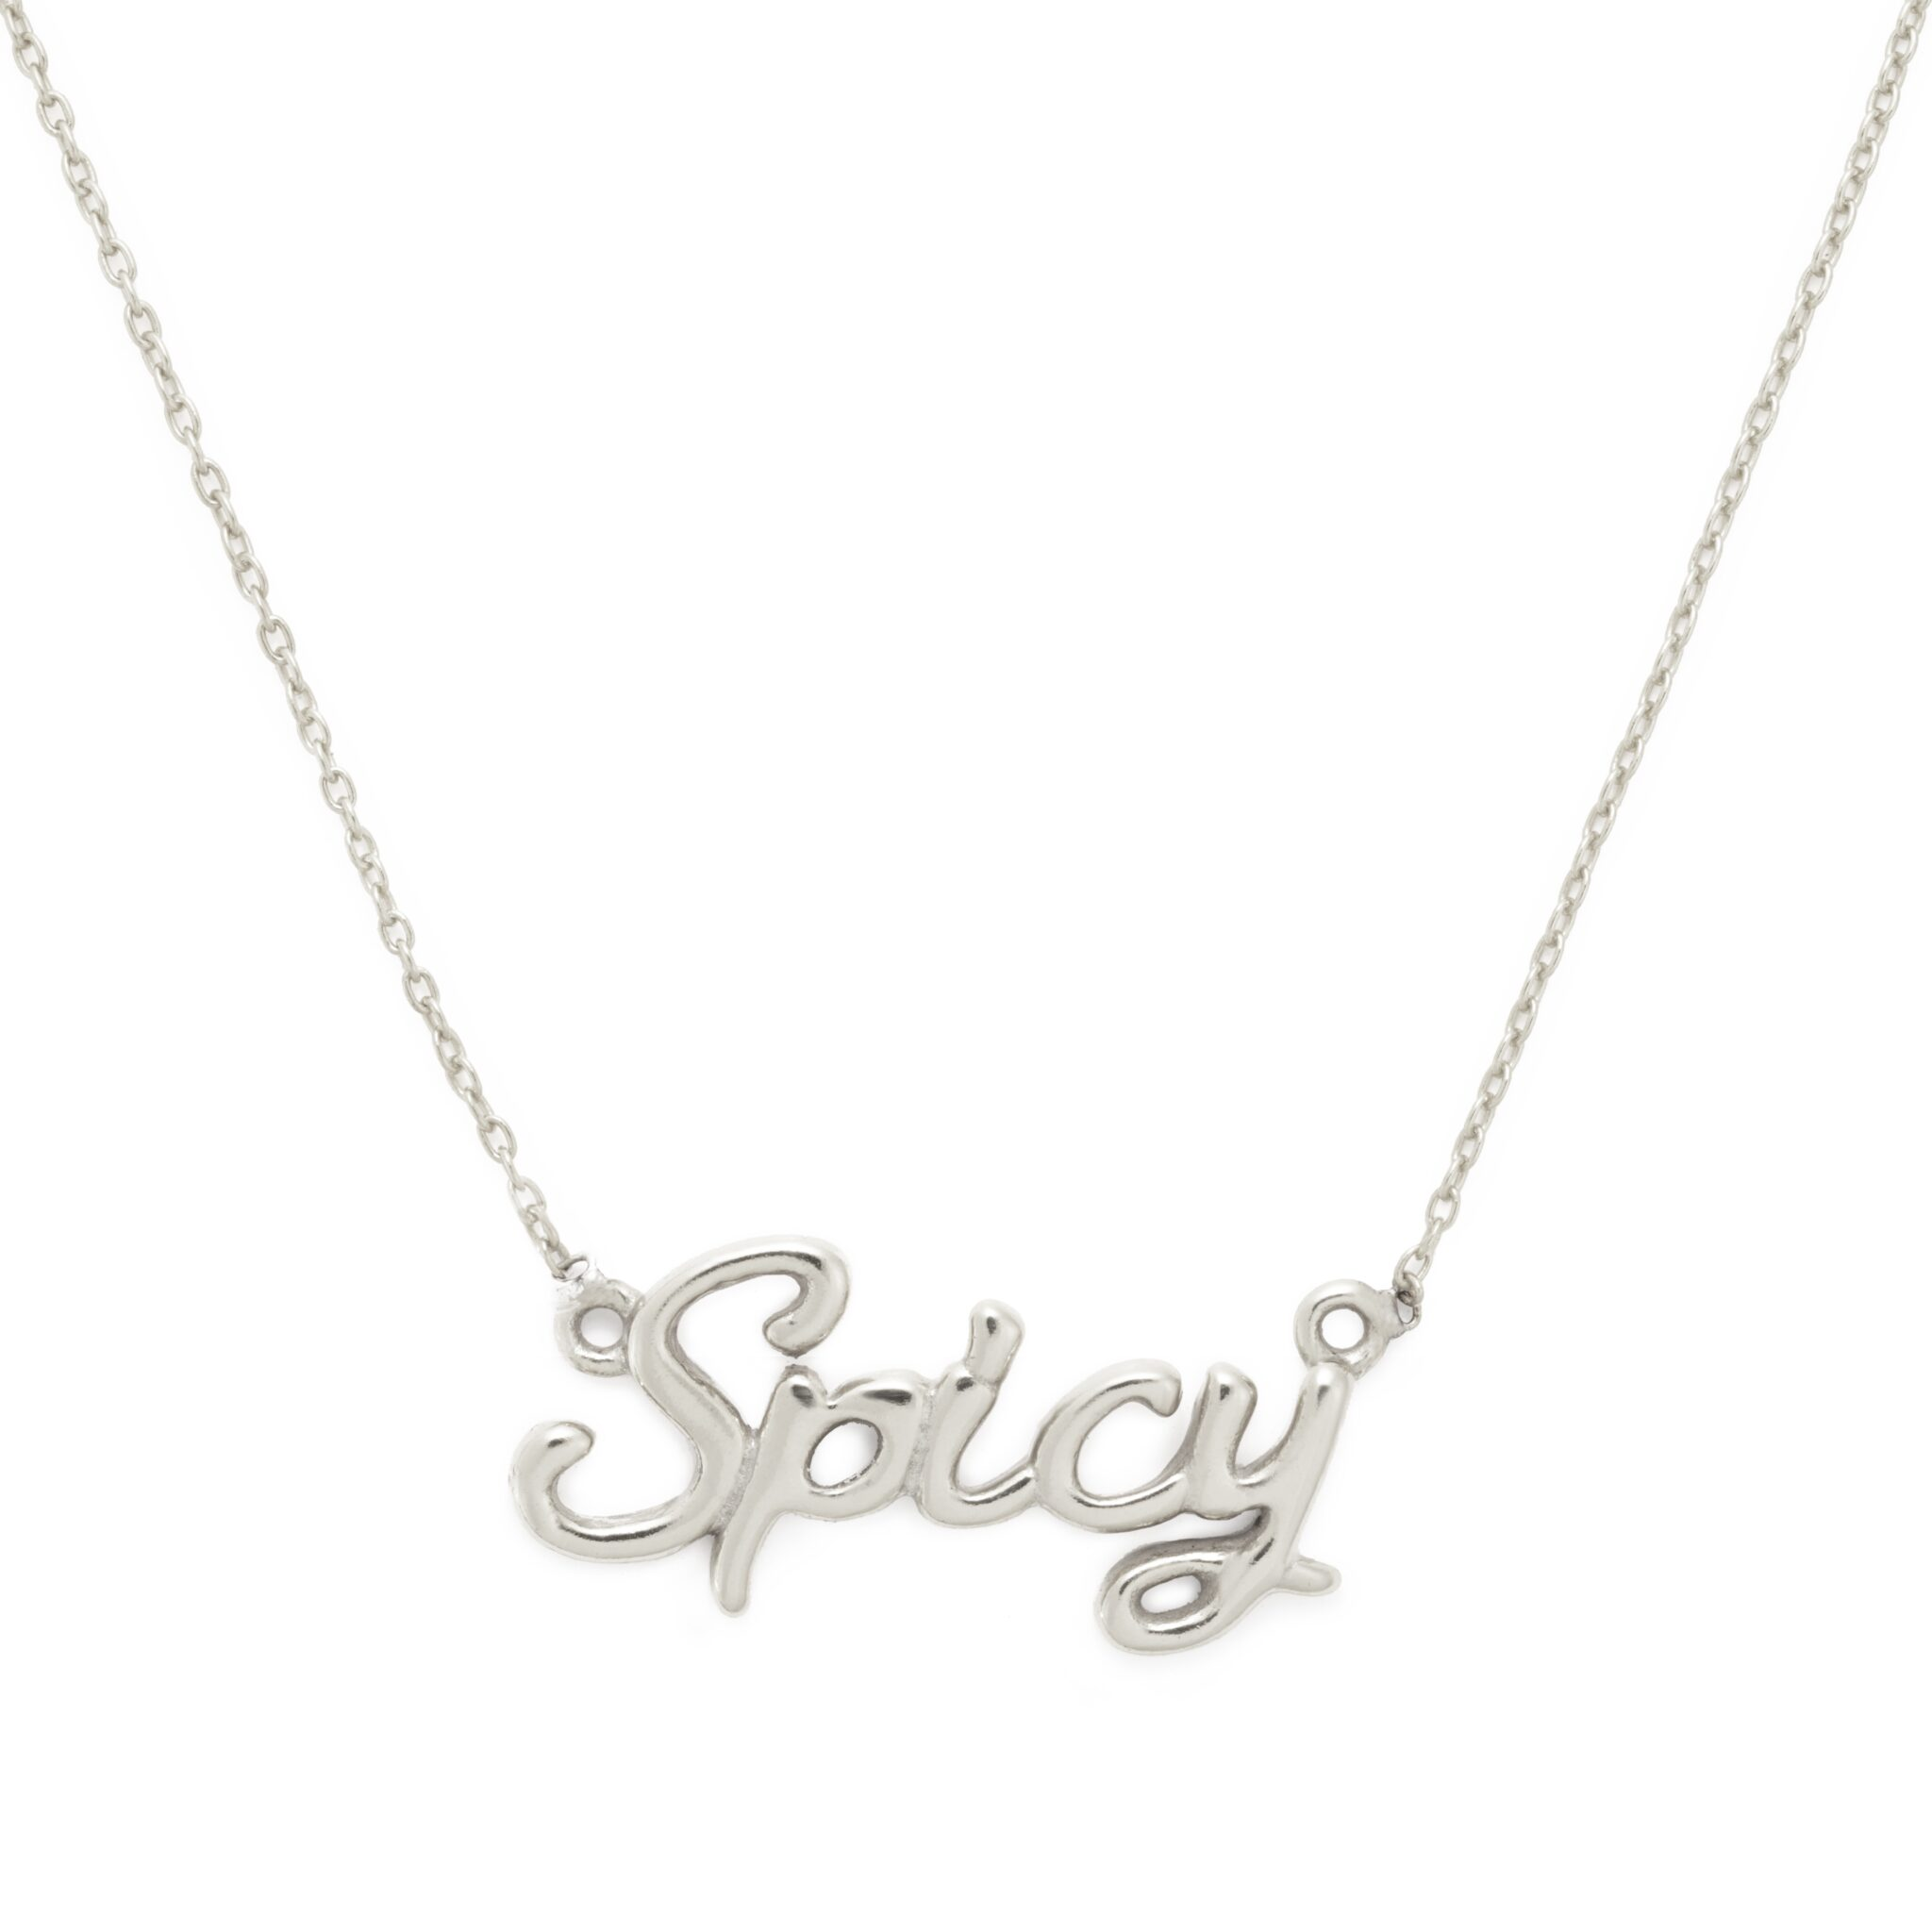 Spicy Necklace, Sterling Silver